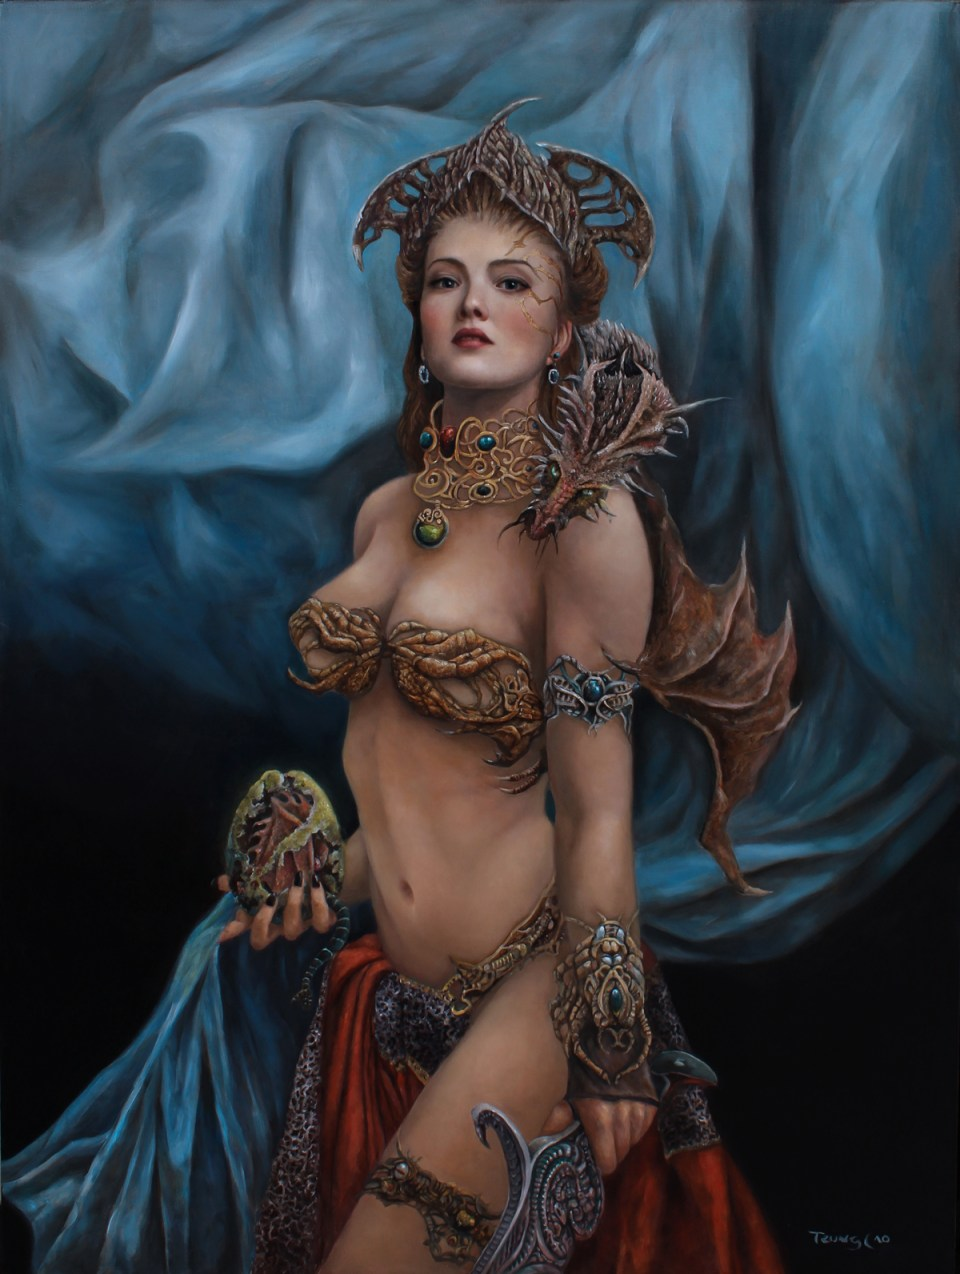 Tamer of Dragons - 30 x 40 in, oil on wood panel